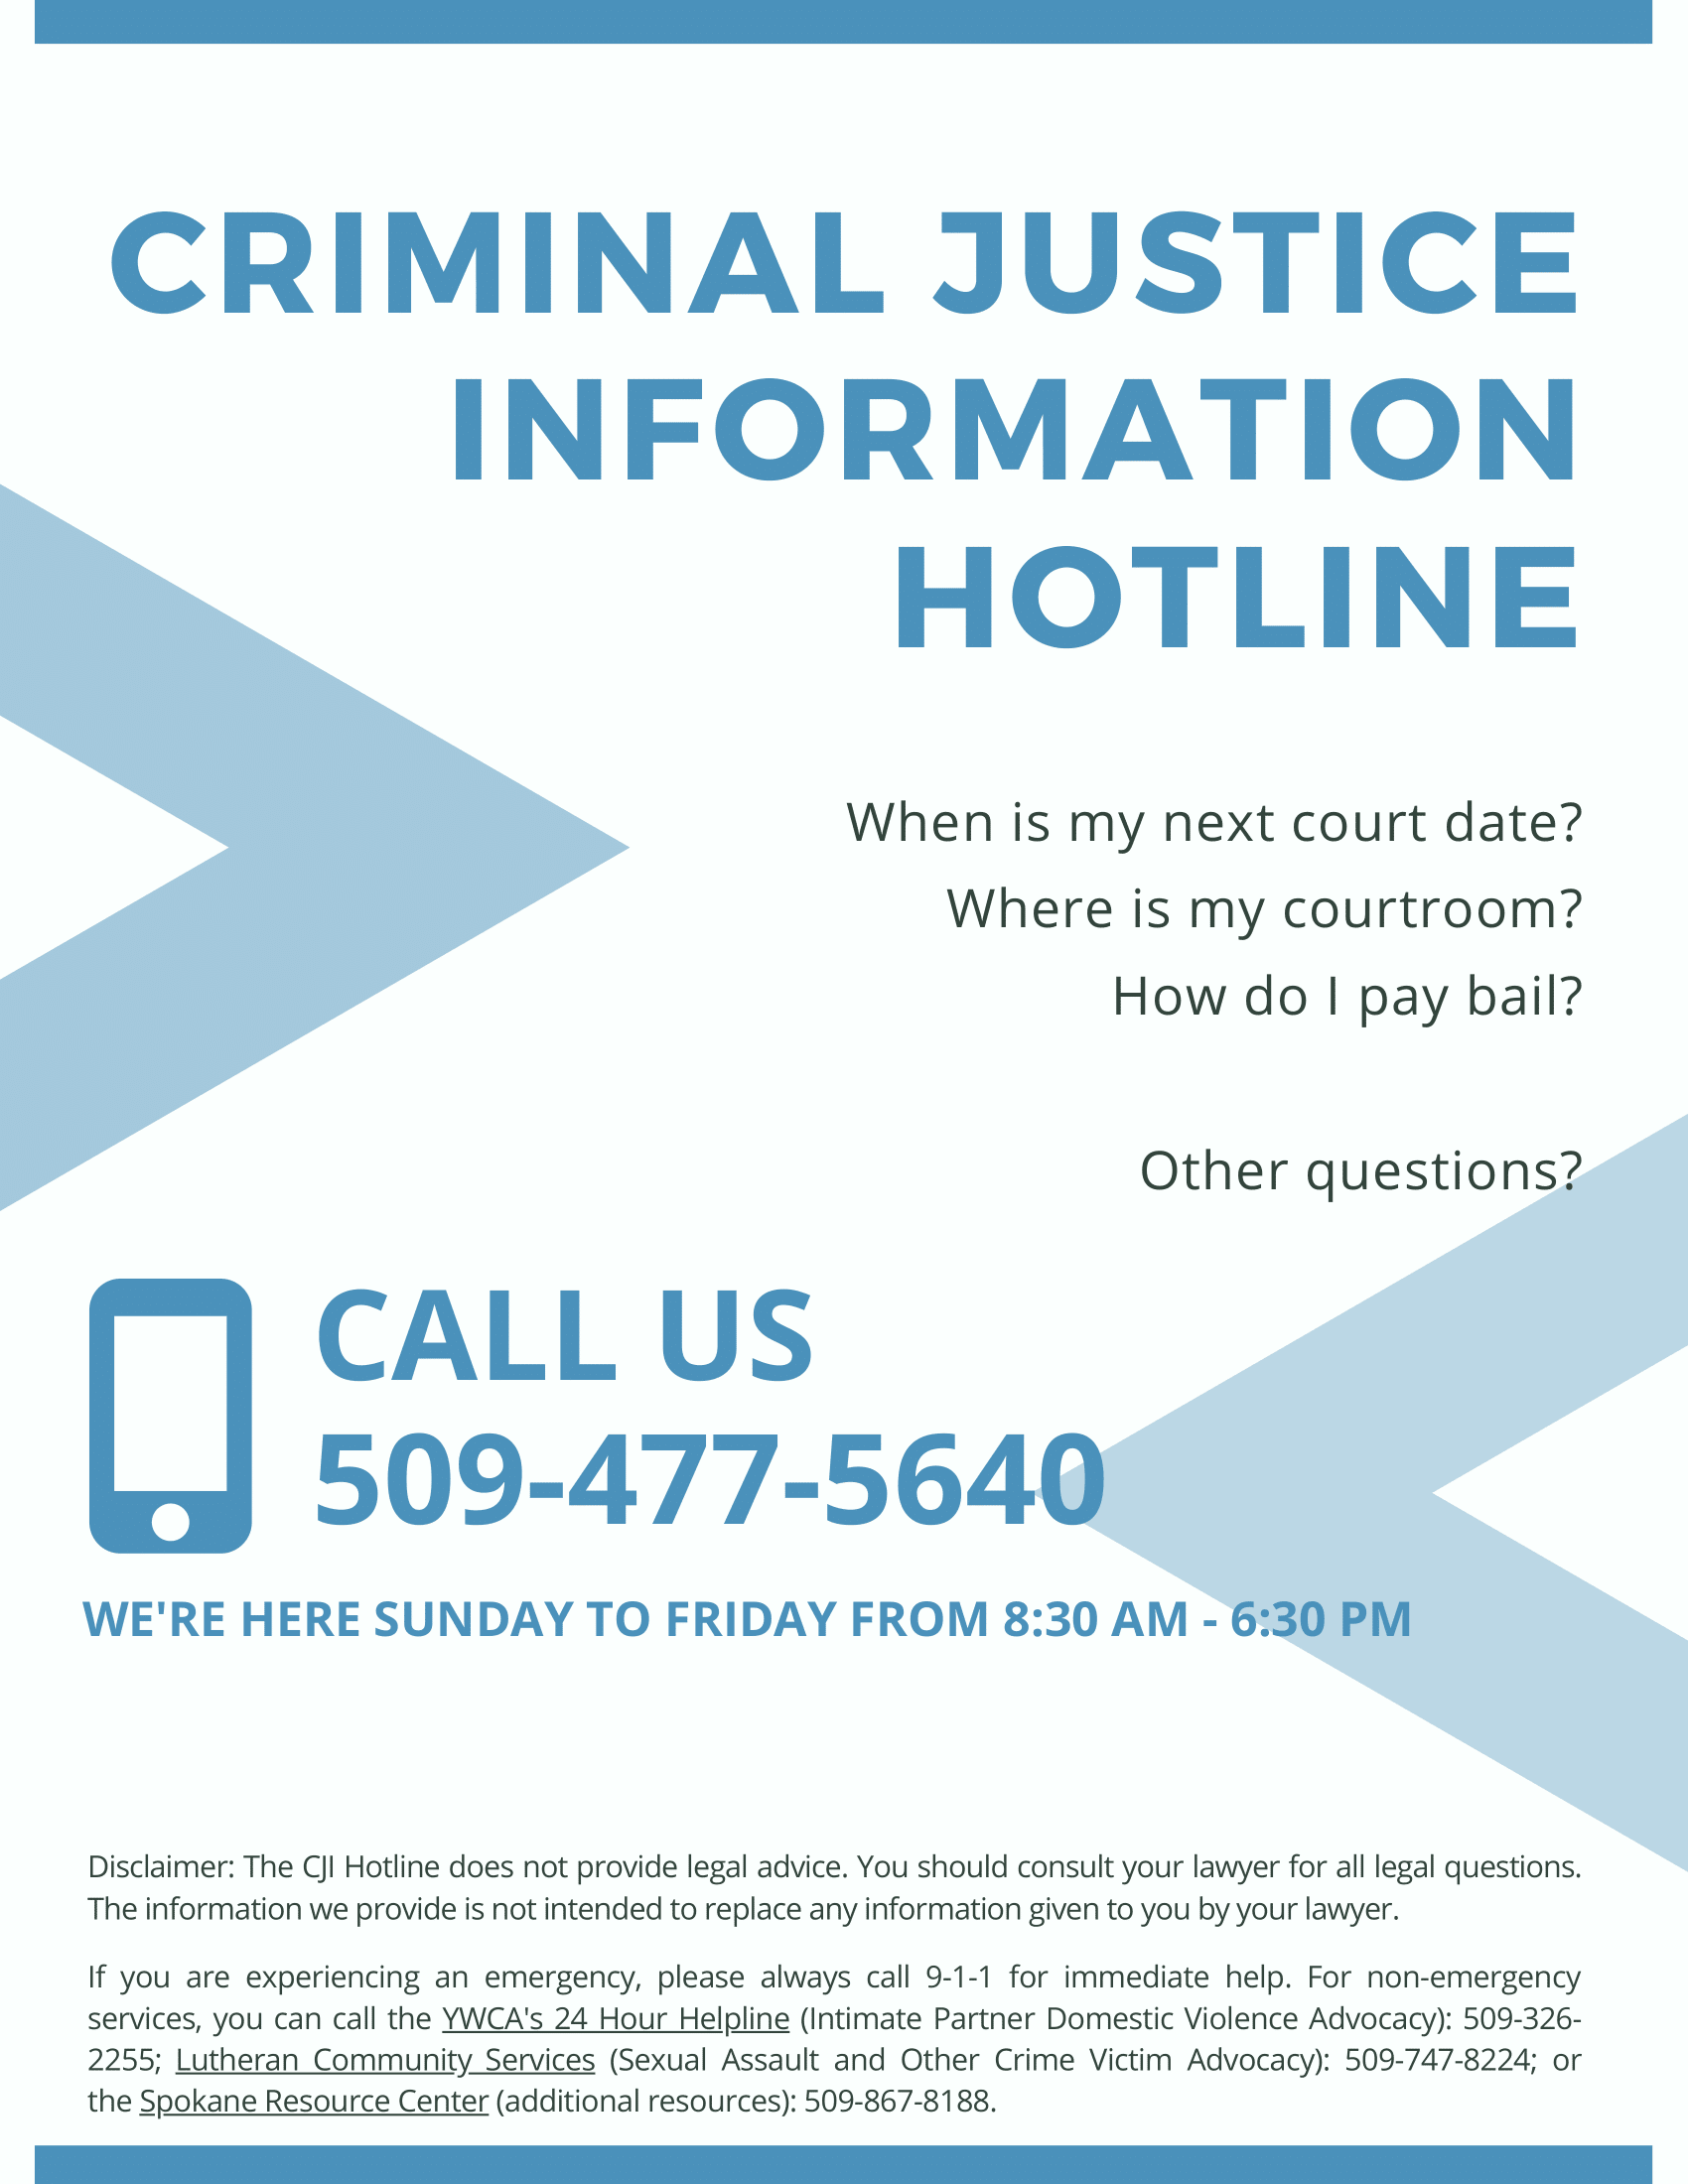 Criminal Justice Information Hotline Poster in English